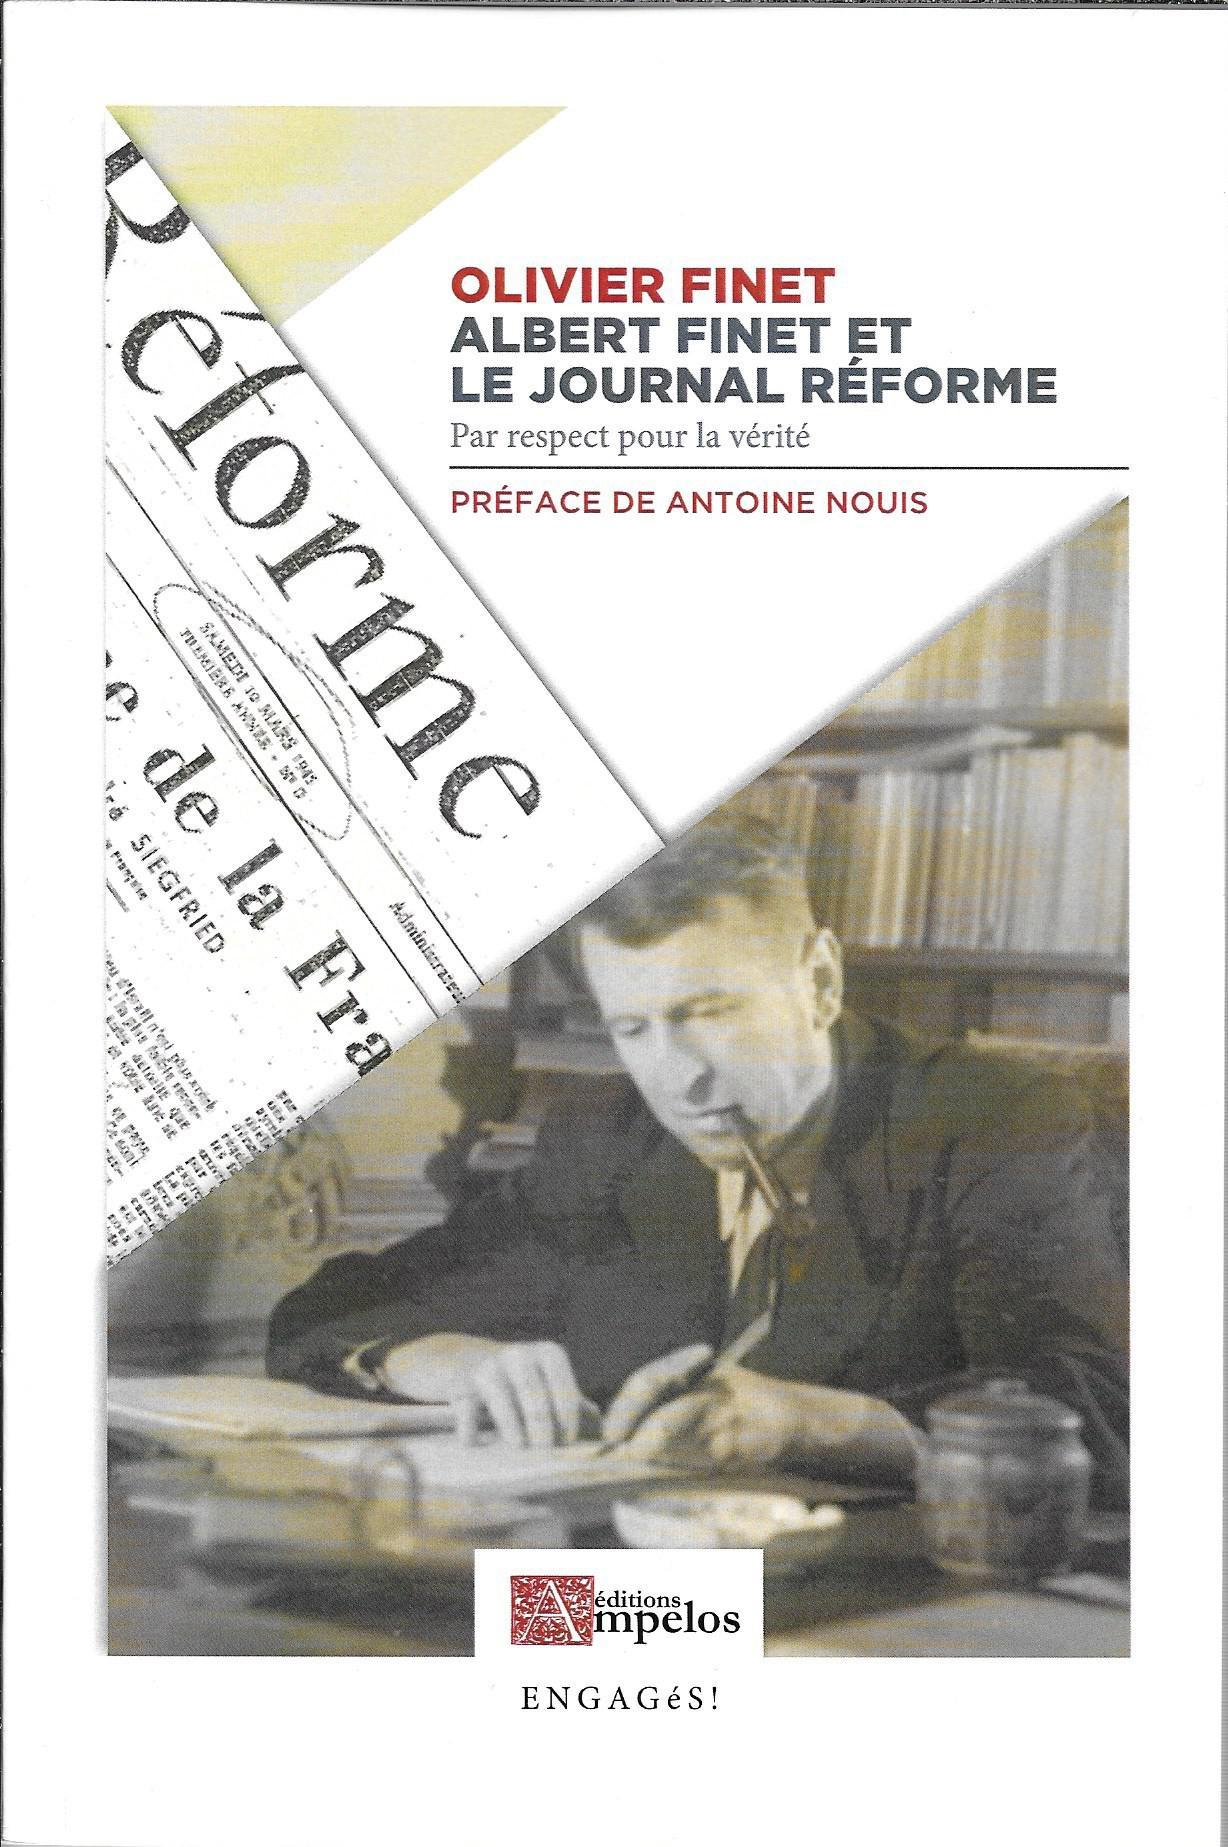 ALBERT FINET ET LE JOURNAL REFORME